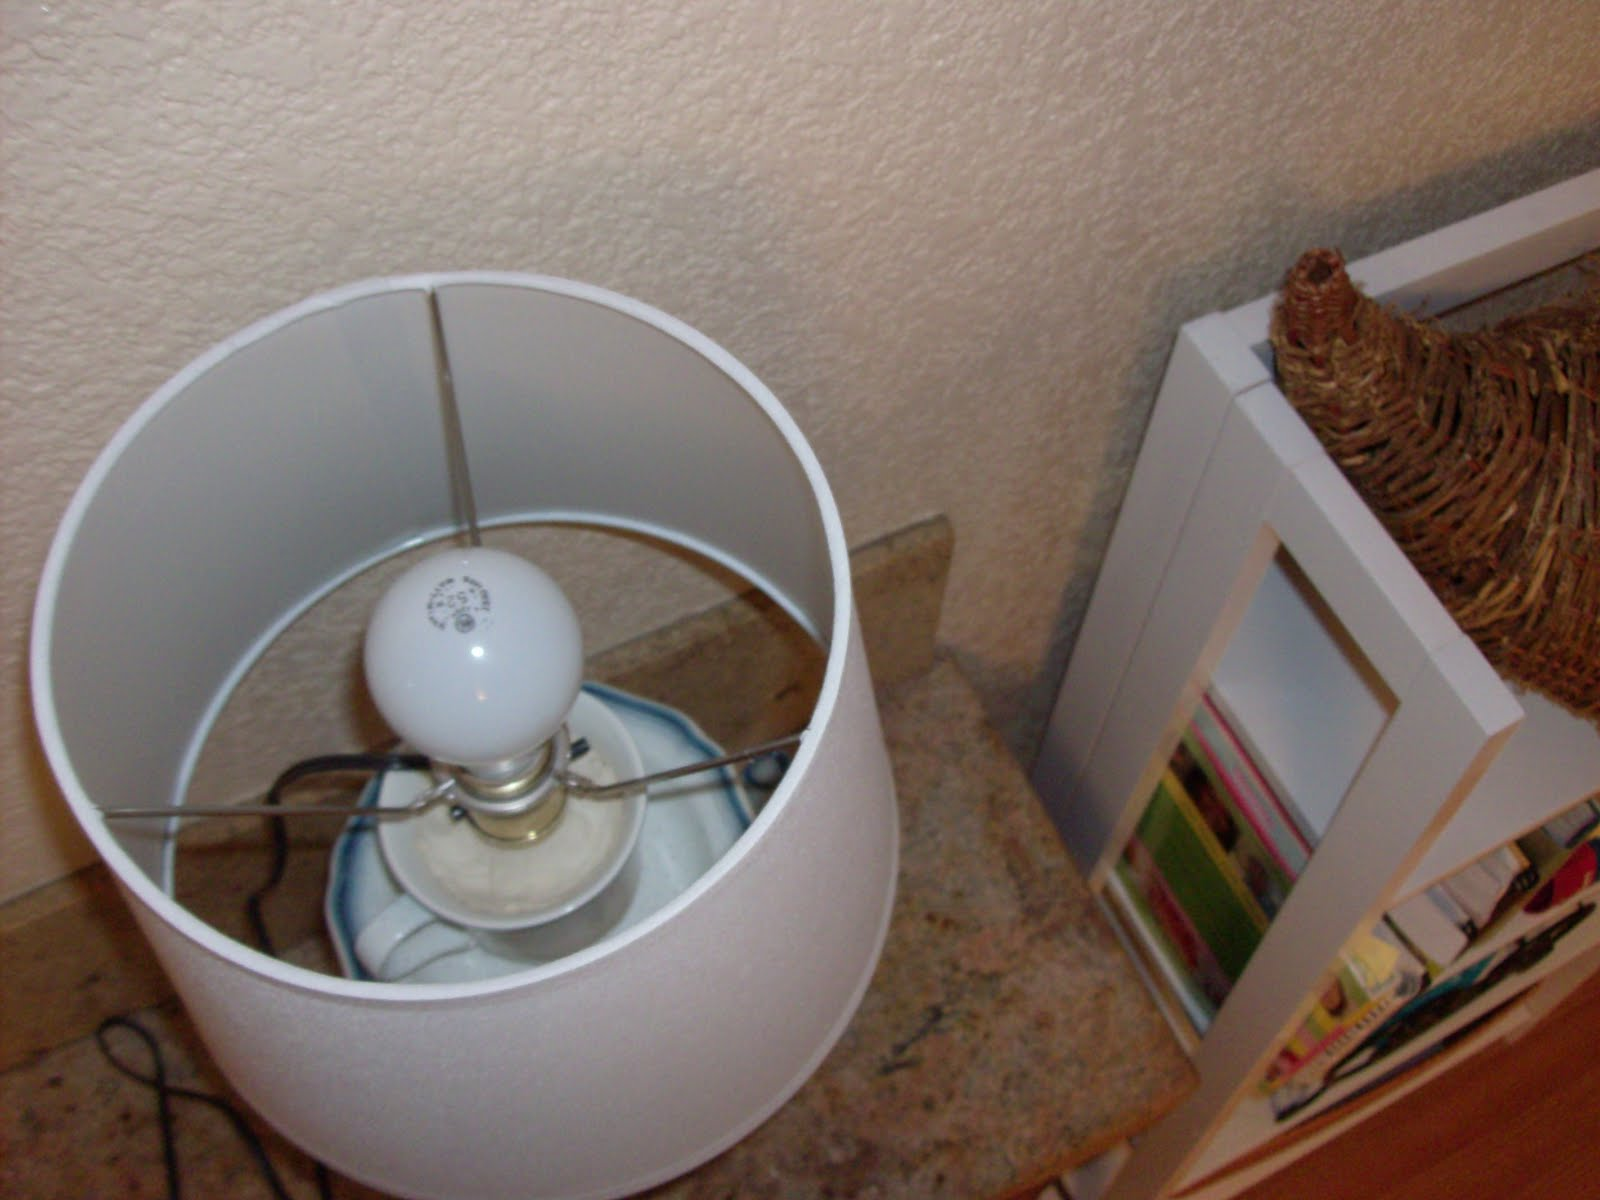 I Put The Lamp Shade Around The Socket And Plugged In A Light Bulb. Hereu0027s  The View From The Top Of The Lamp: